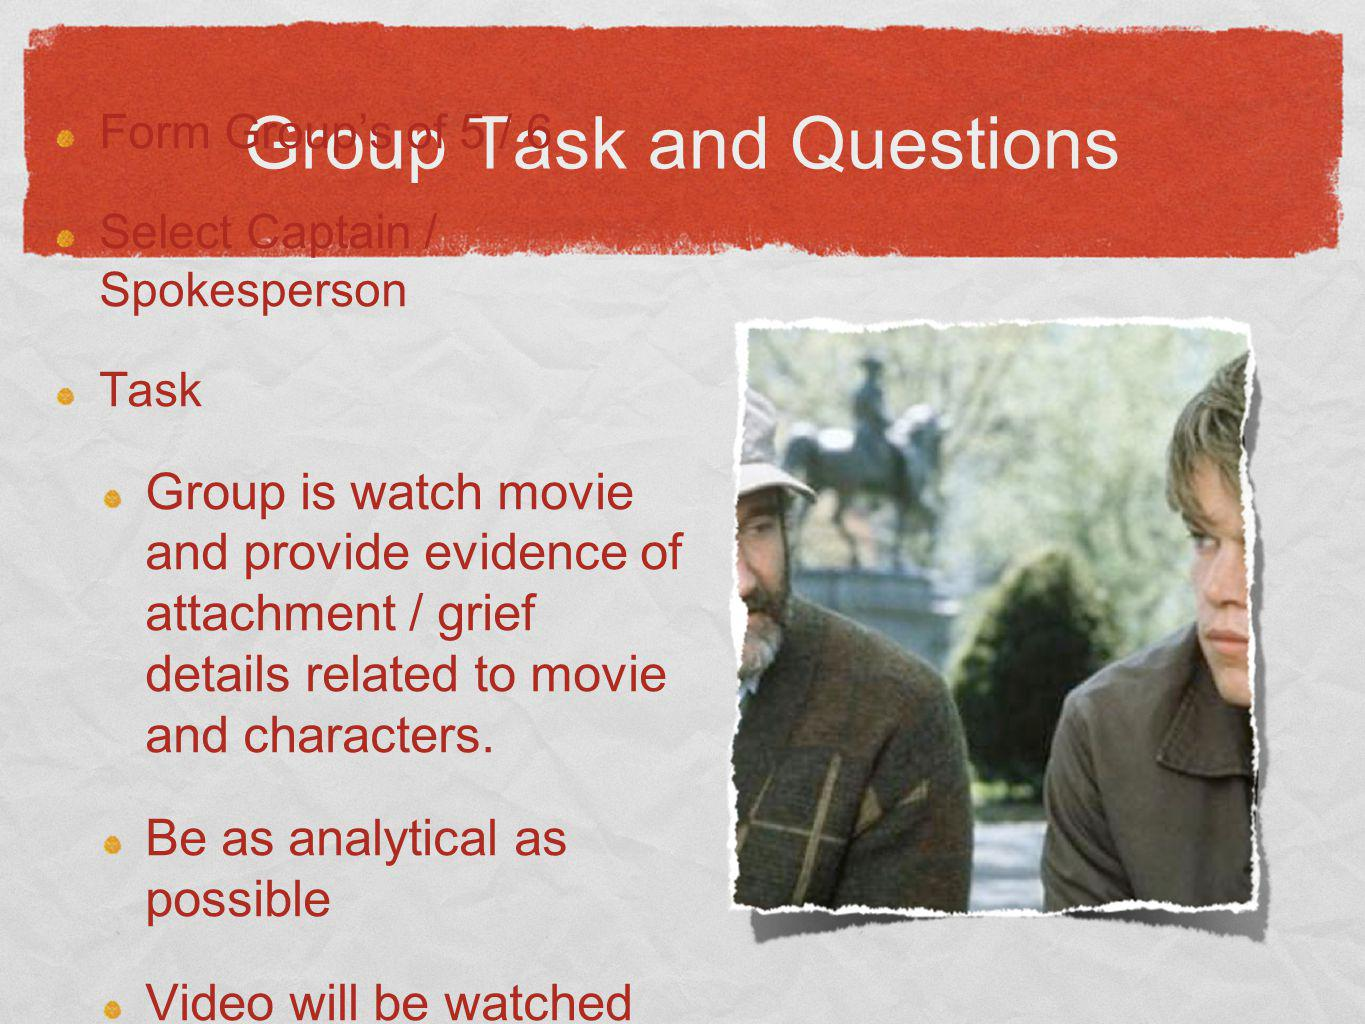 Group Task and Questions